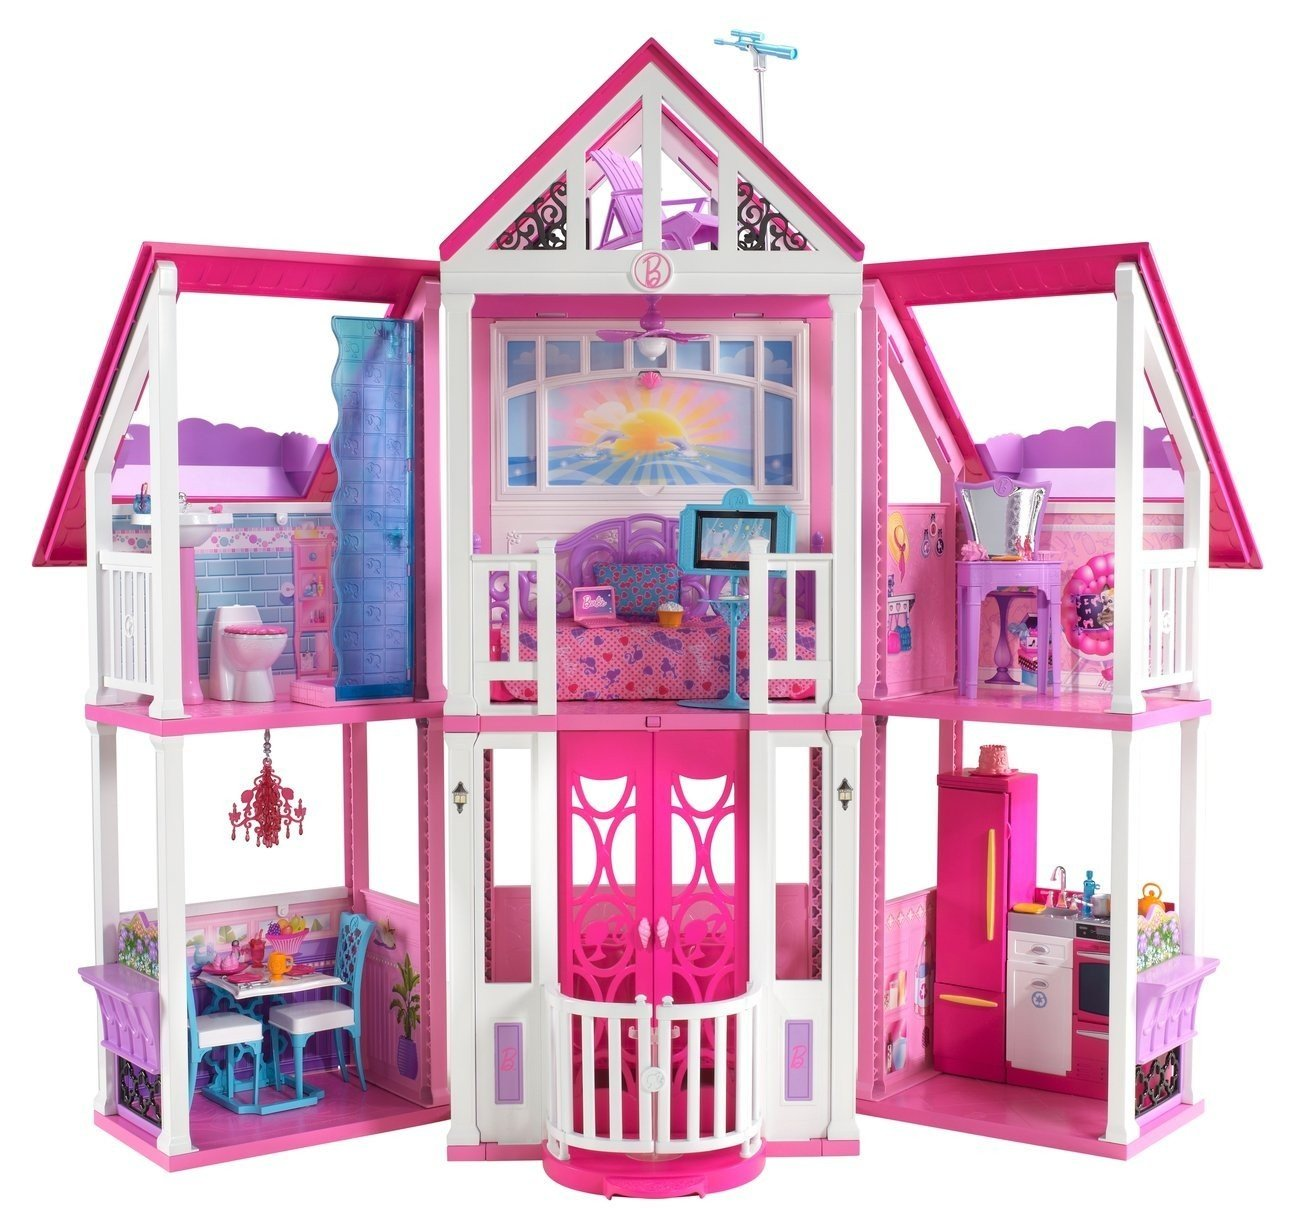 de tag barbie puppe haus. Black Bedroom Furniture Sets. Home Design Ideas